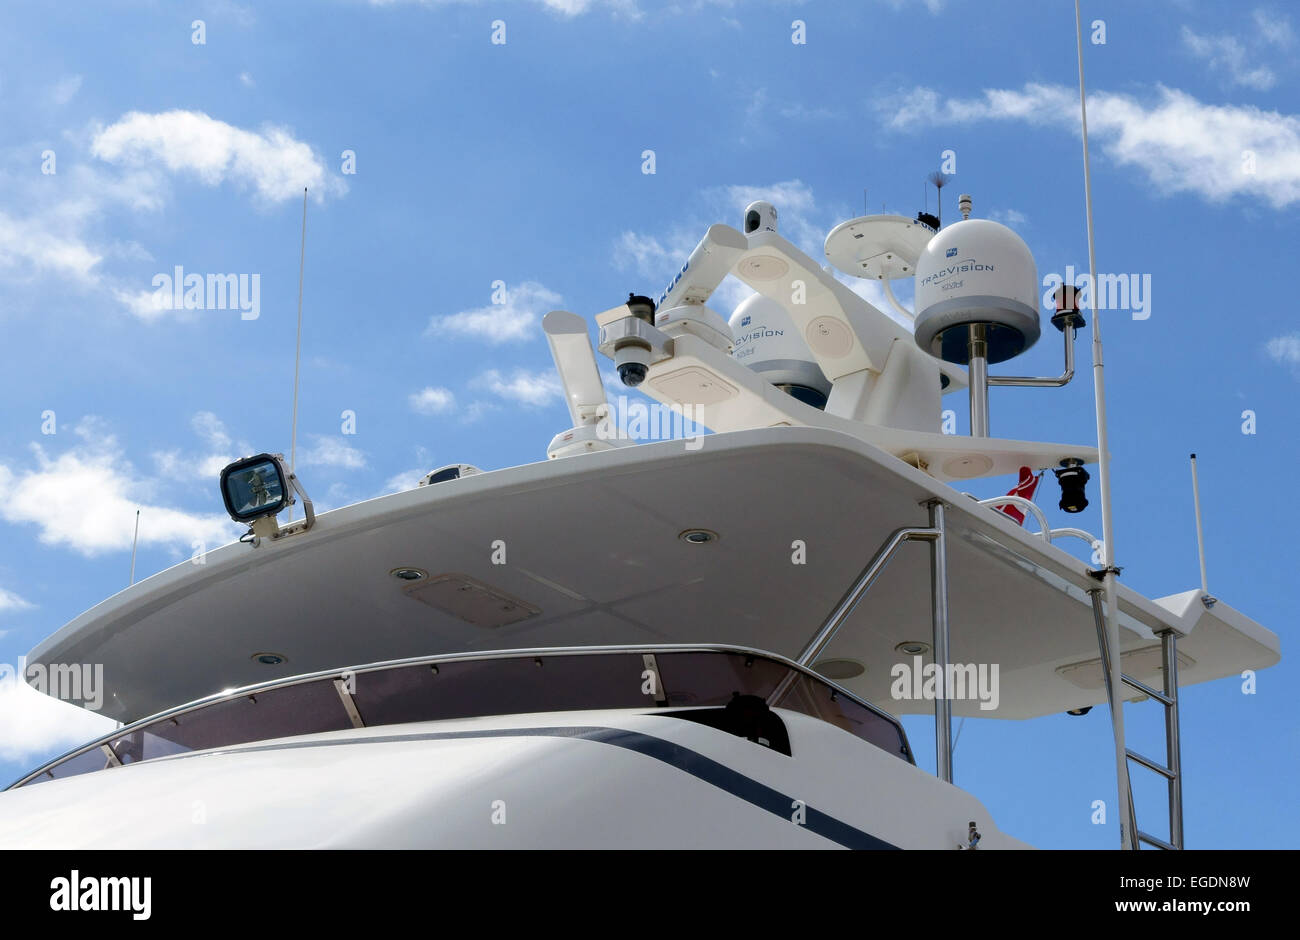 Navigational equipment on a luxury yacht, Canary Islands, Spain - Stock Image